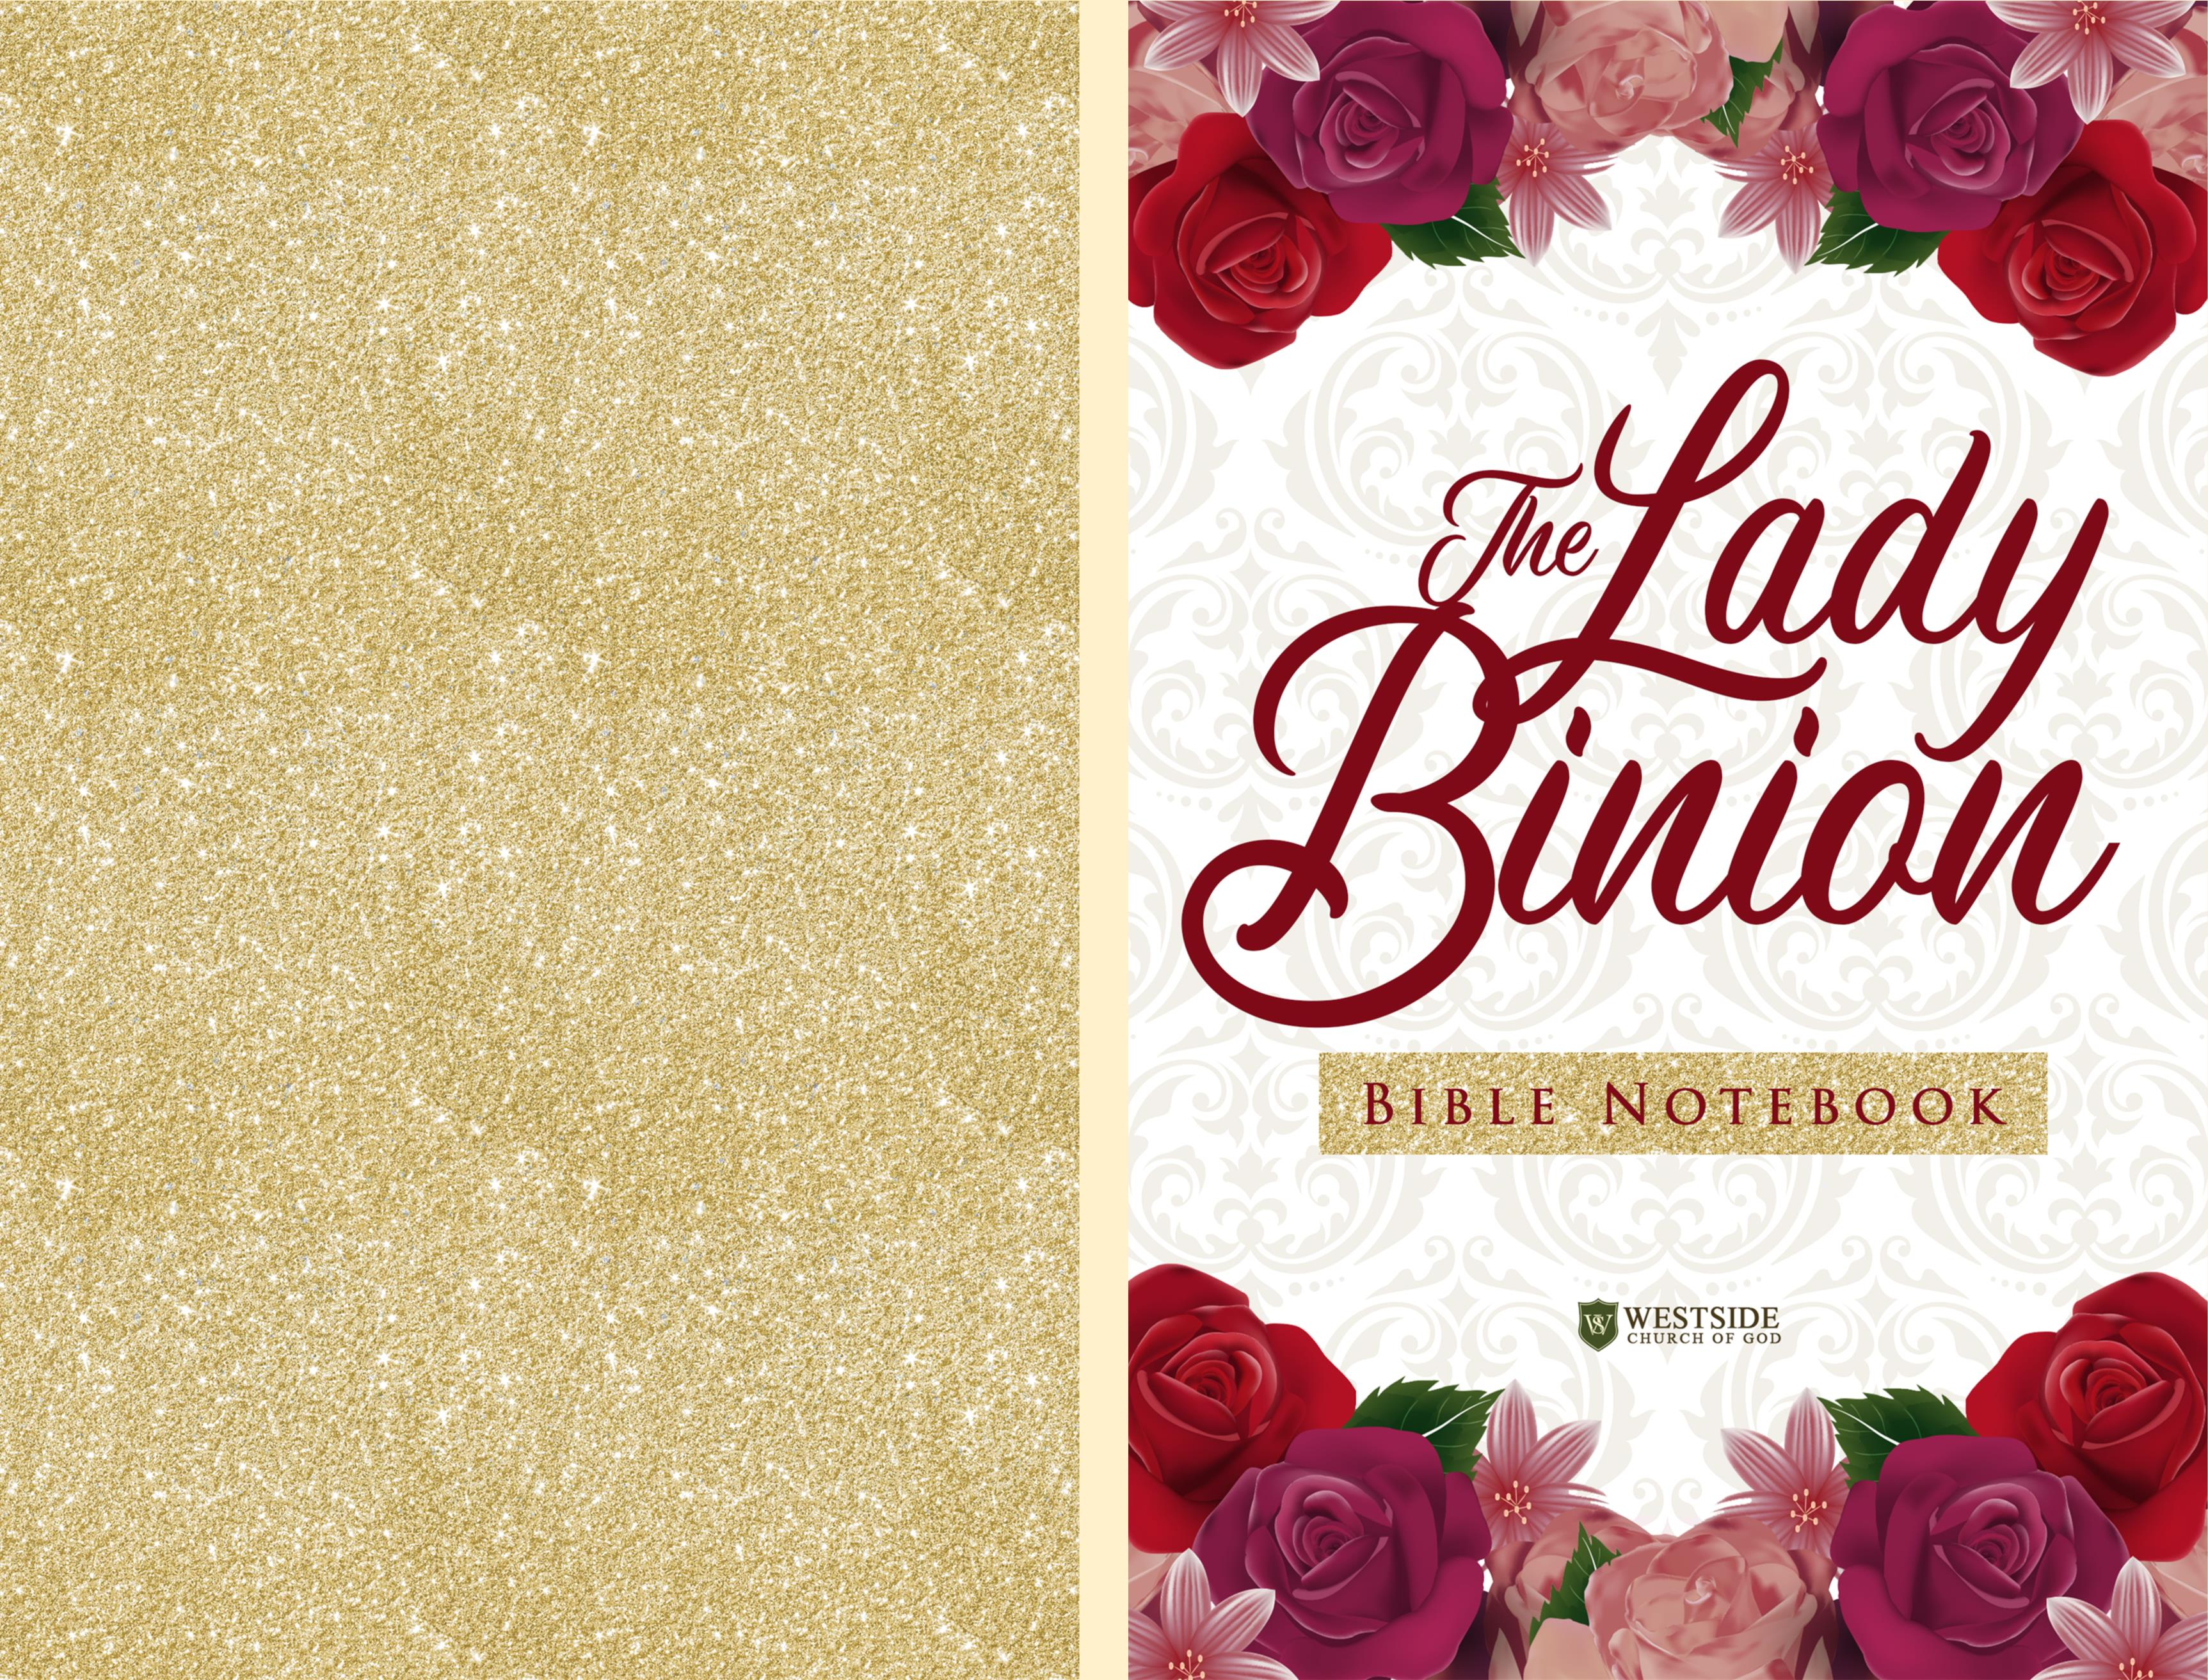 The Lady Binion Bible Notebook cover image